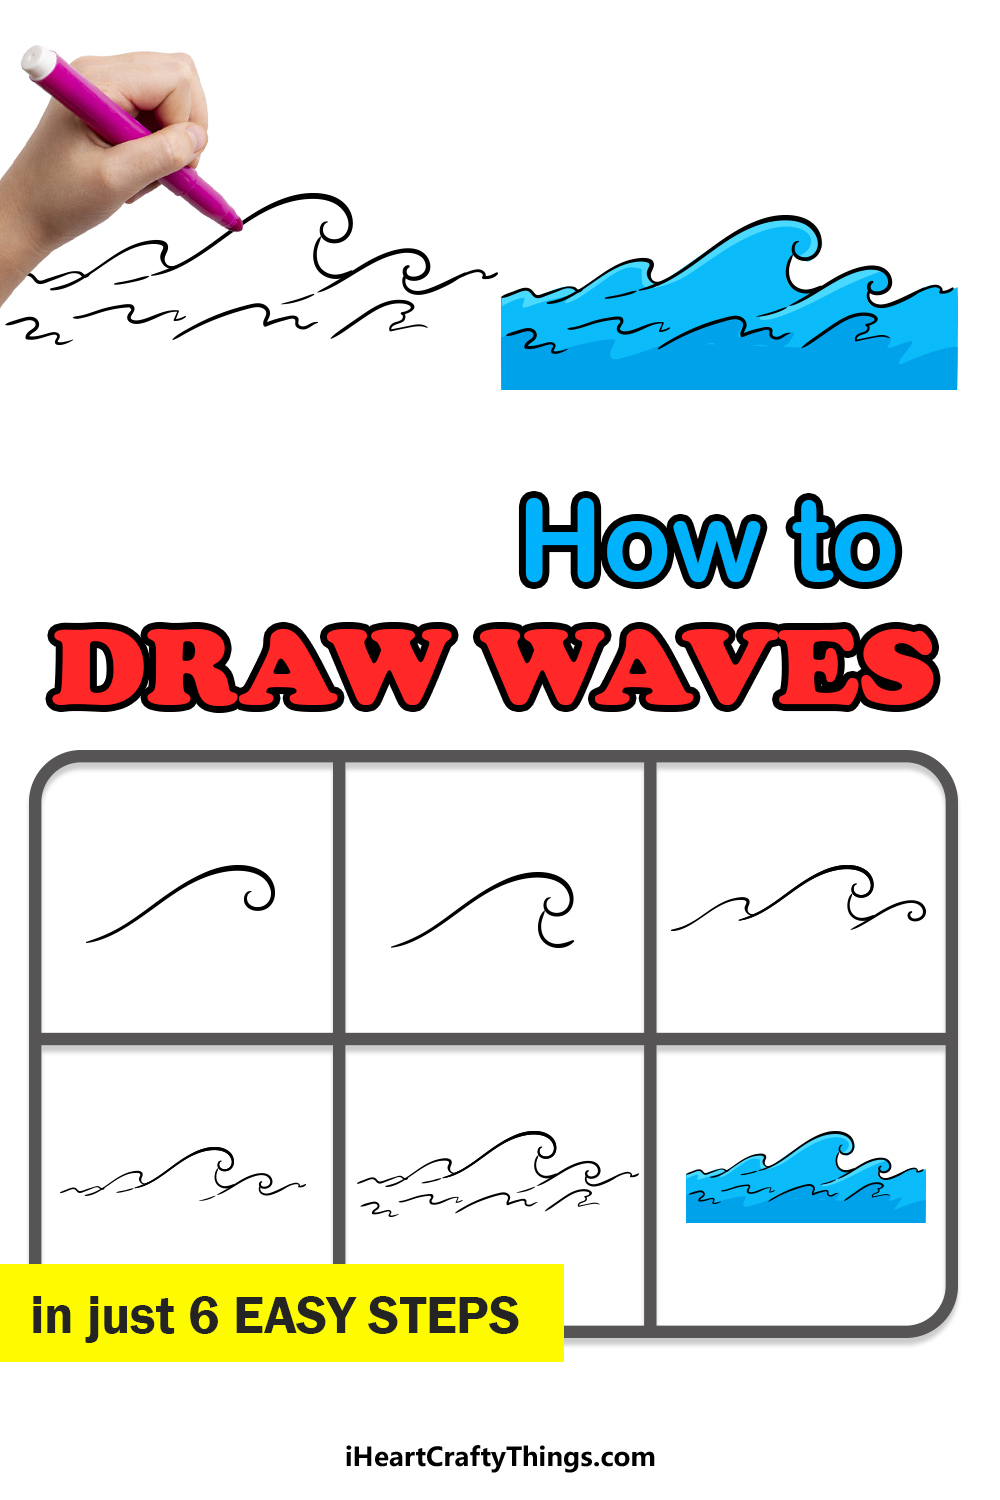 how to draw waves in 6 easy steps